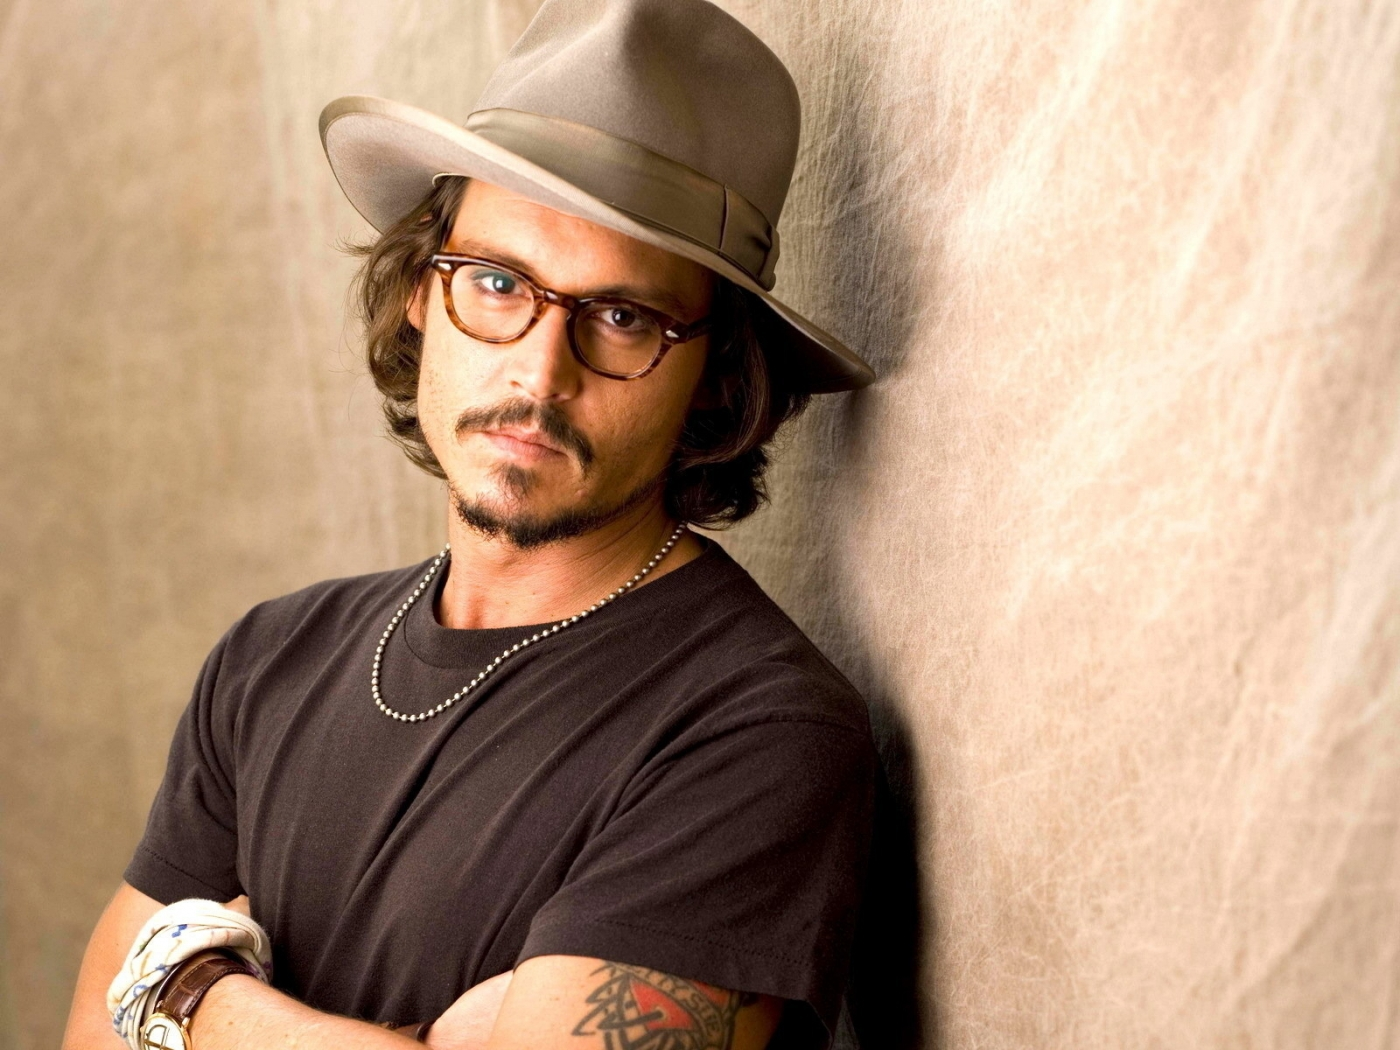 37056 download wallpaper People, Actors, Men, Johnny Depp screensavers and pictures for free